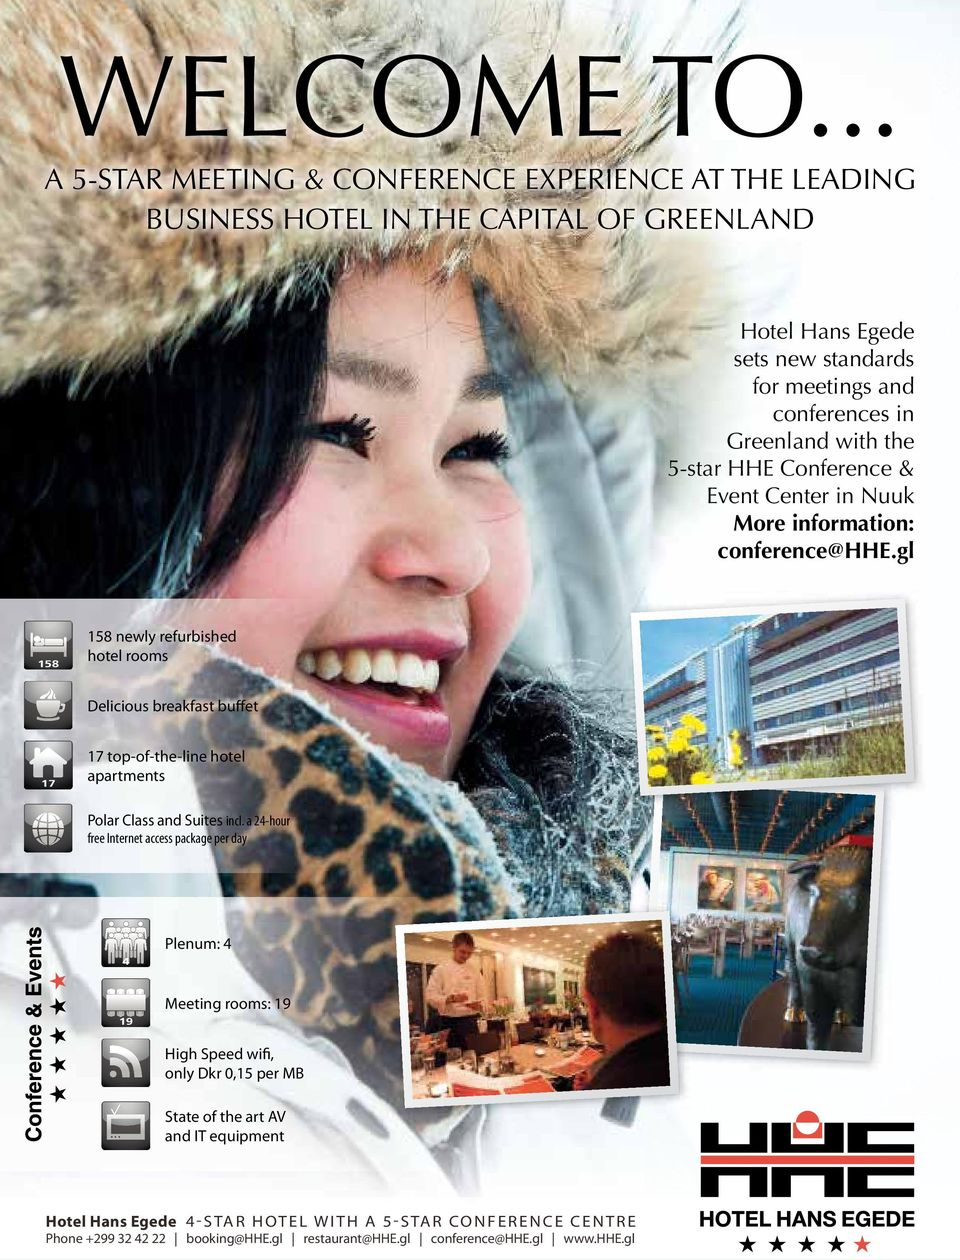 the 5-star HHE Conference & Event Center in Nuuk More information: conference@hhe.